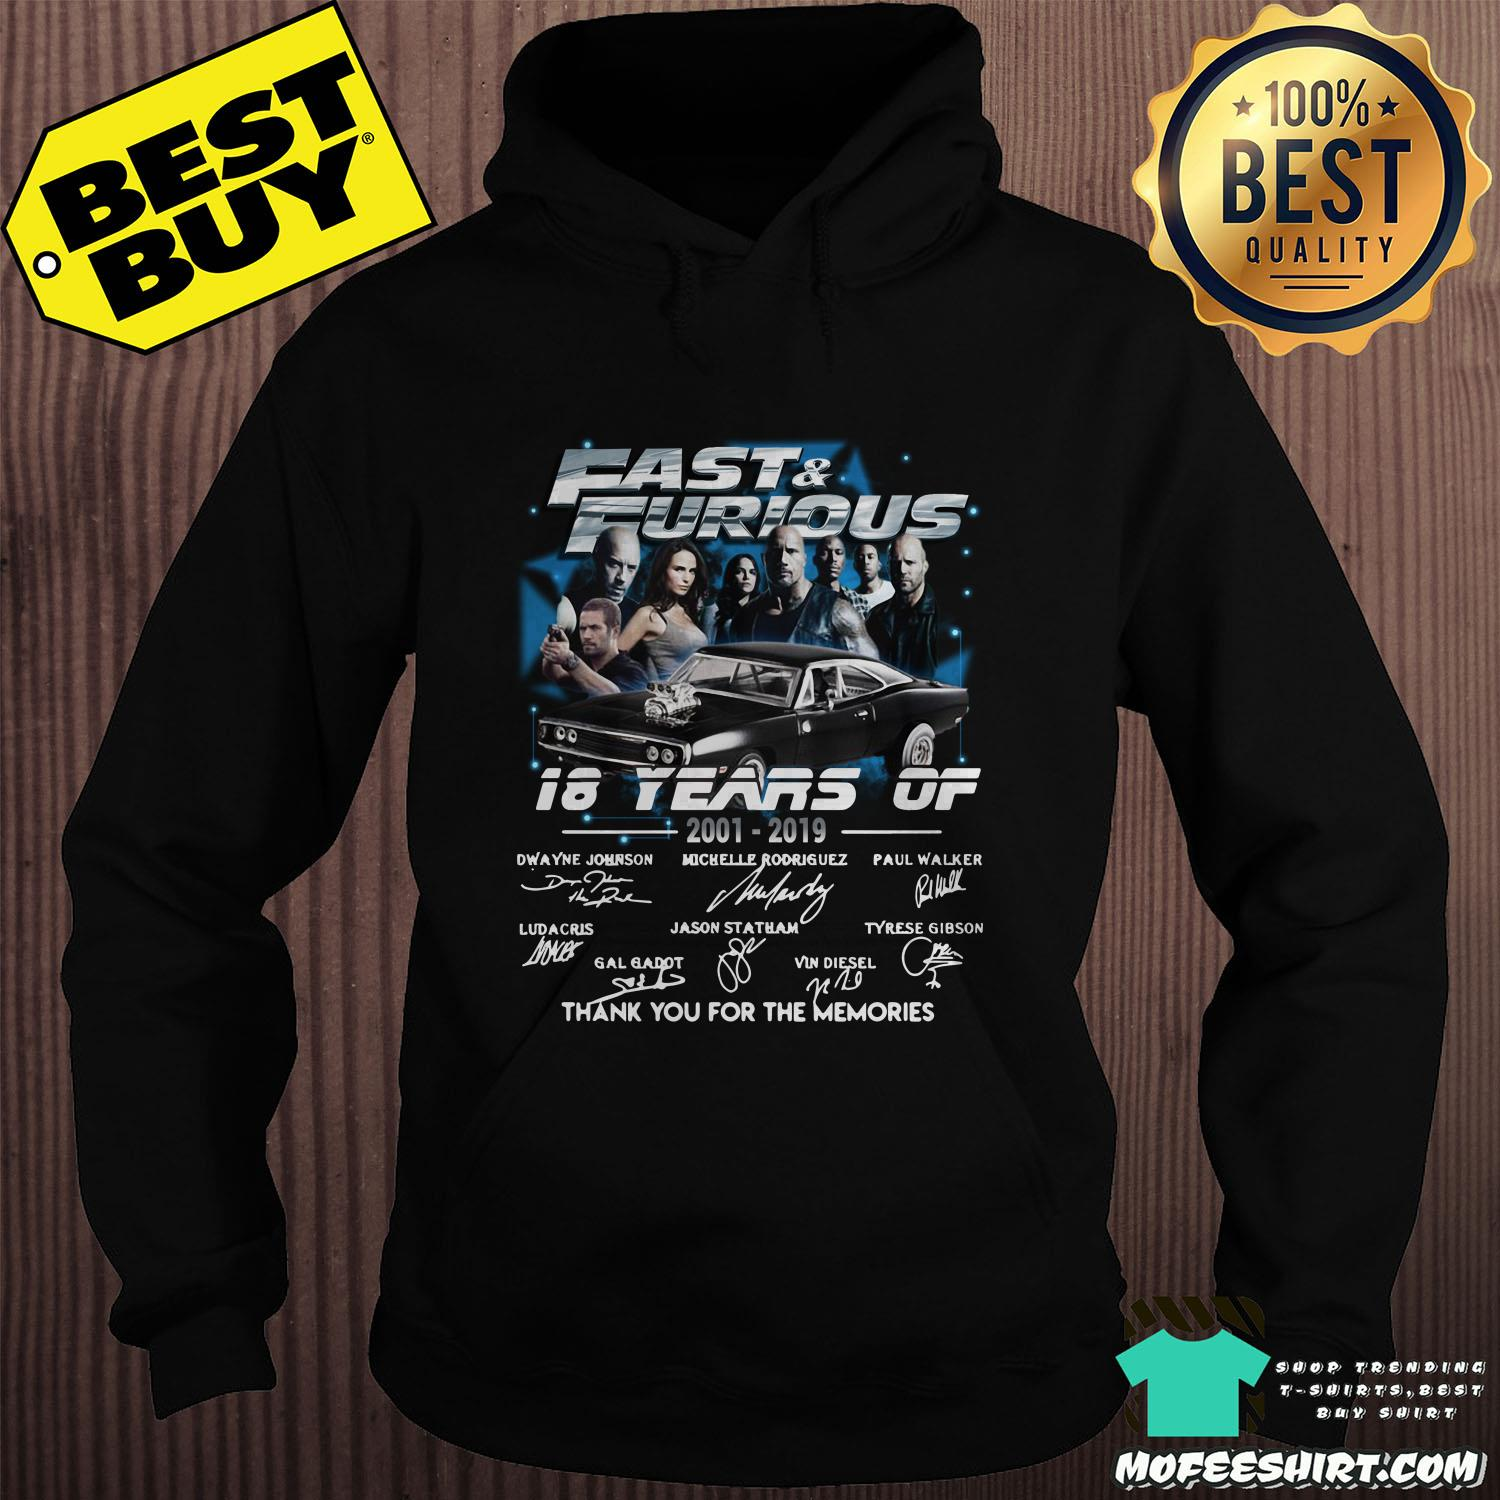 fast and furious 18 years of 2001 2019 thank you for the memories signature hoodie sweater - Fast And Furious 18 Years Of 2001-2019 Thank You For The Memories Signature Shirt Sweater